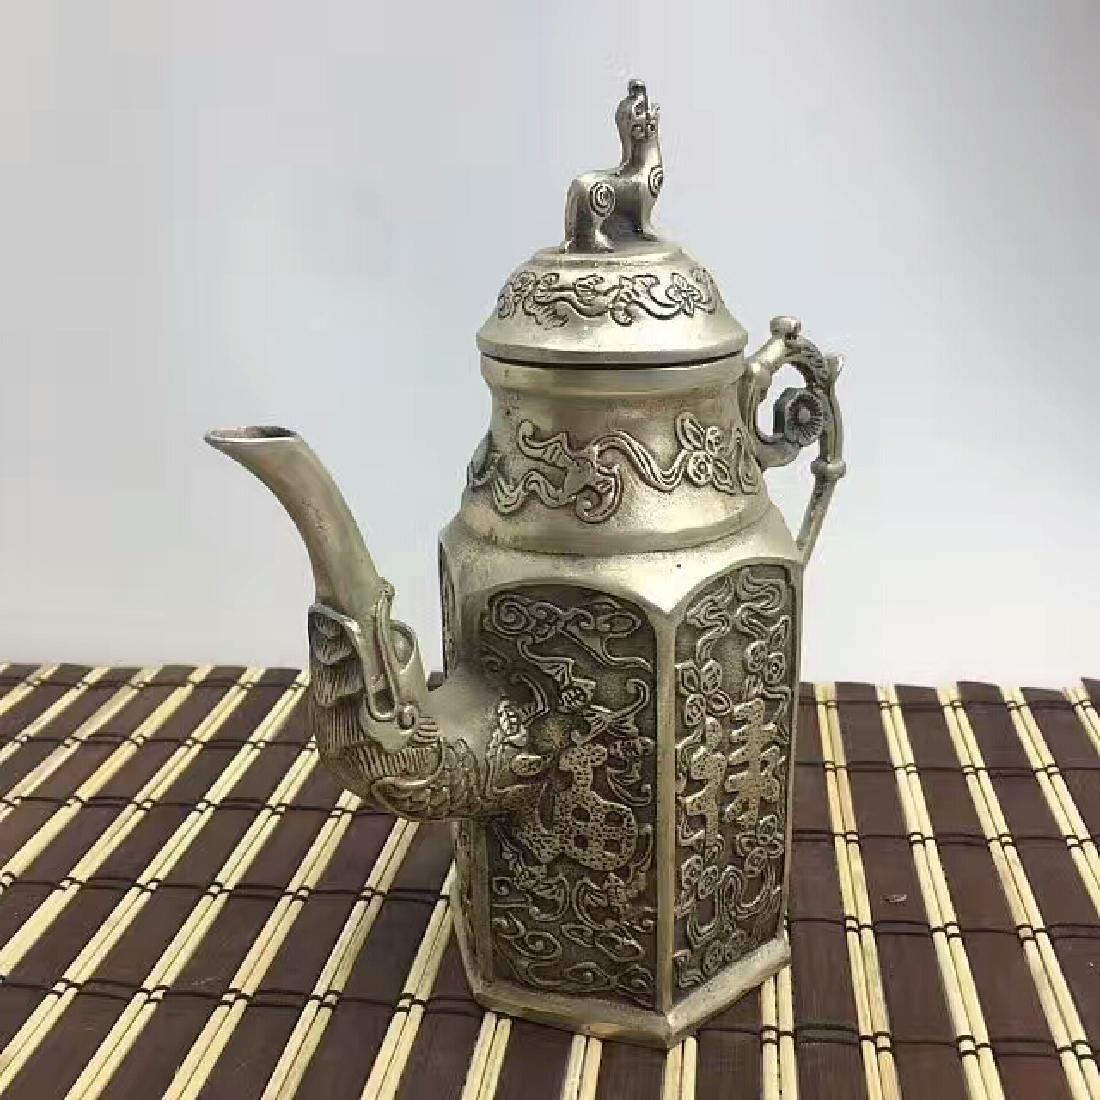 Chinese Antique Copper-Nickel Hexagonal Tea Pot